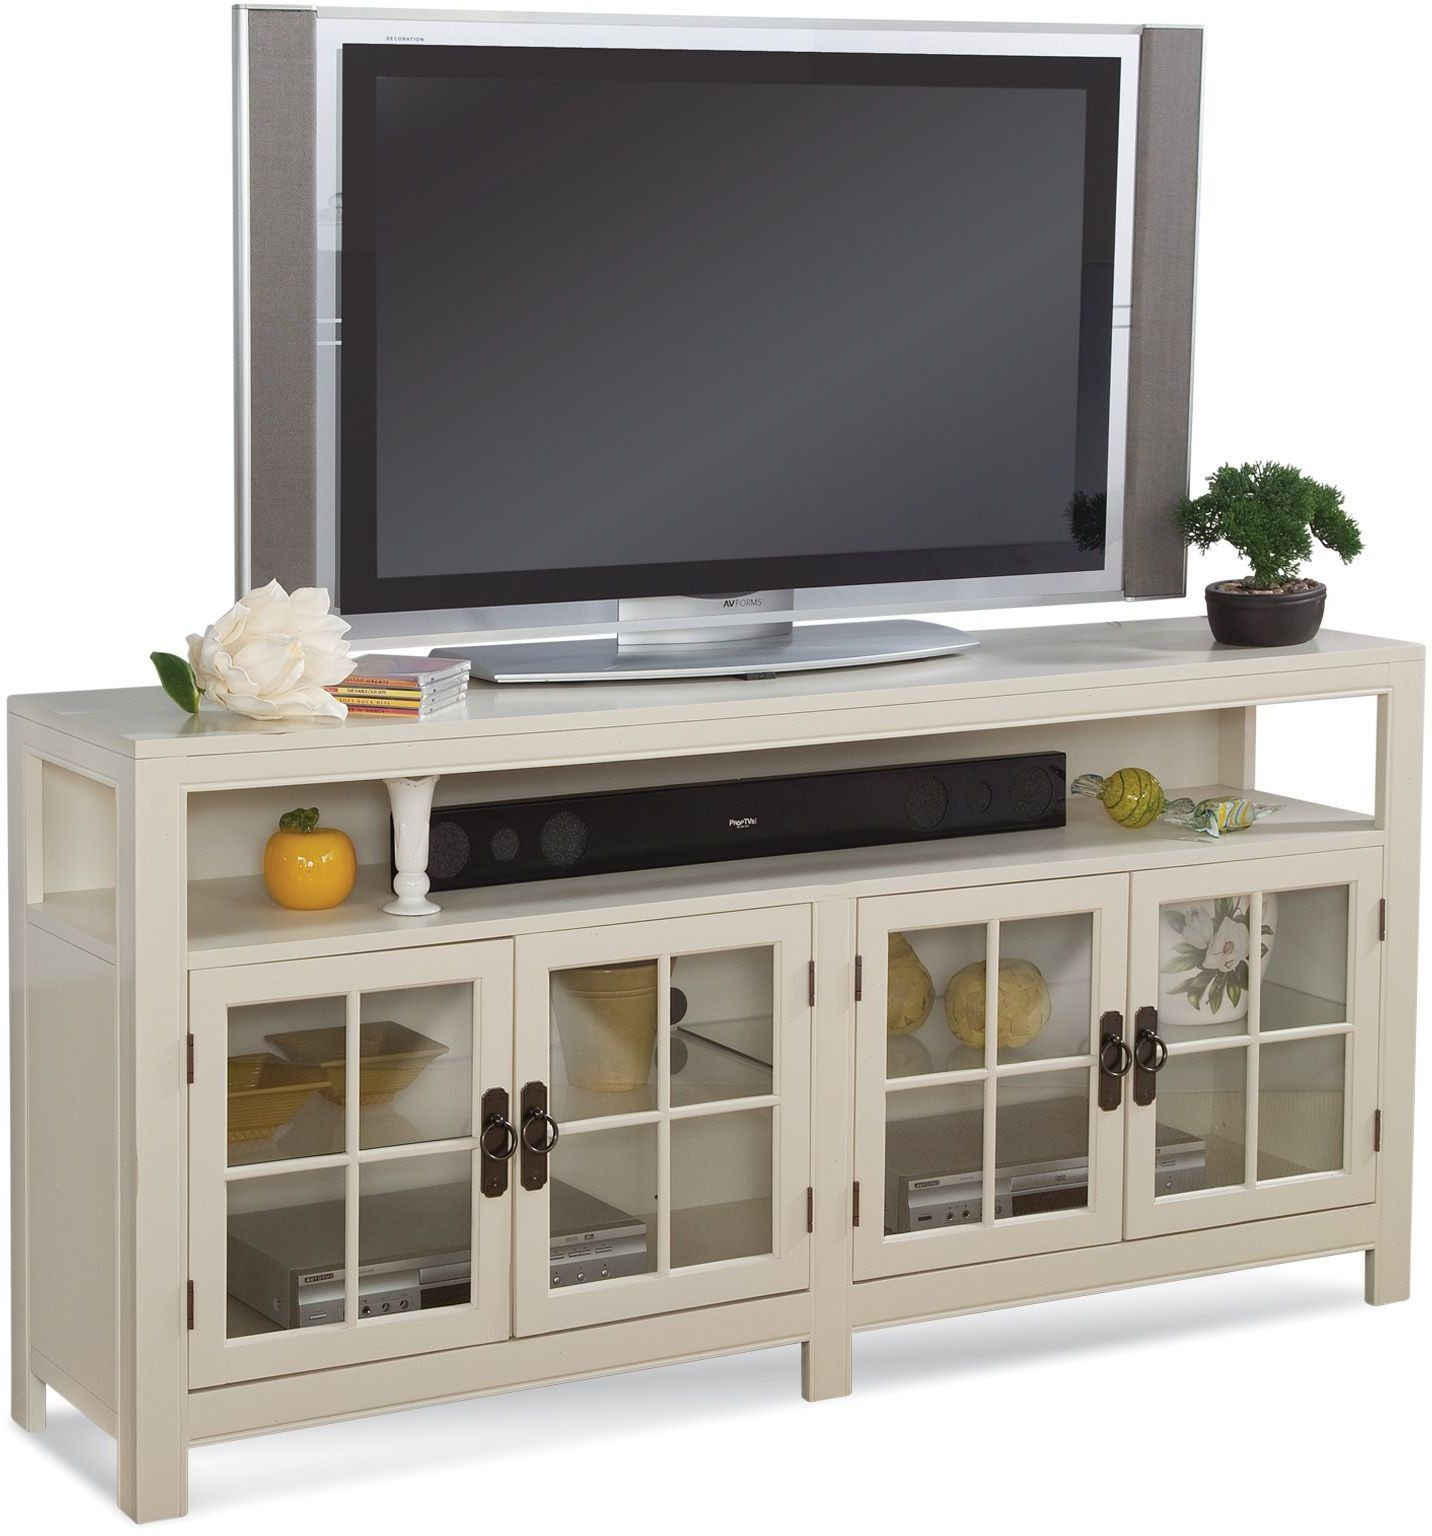 Color Time Saybrook Sandshell White Tv Console From Philip